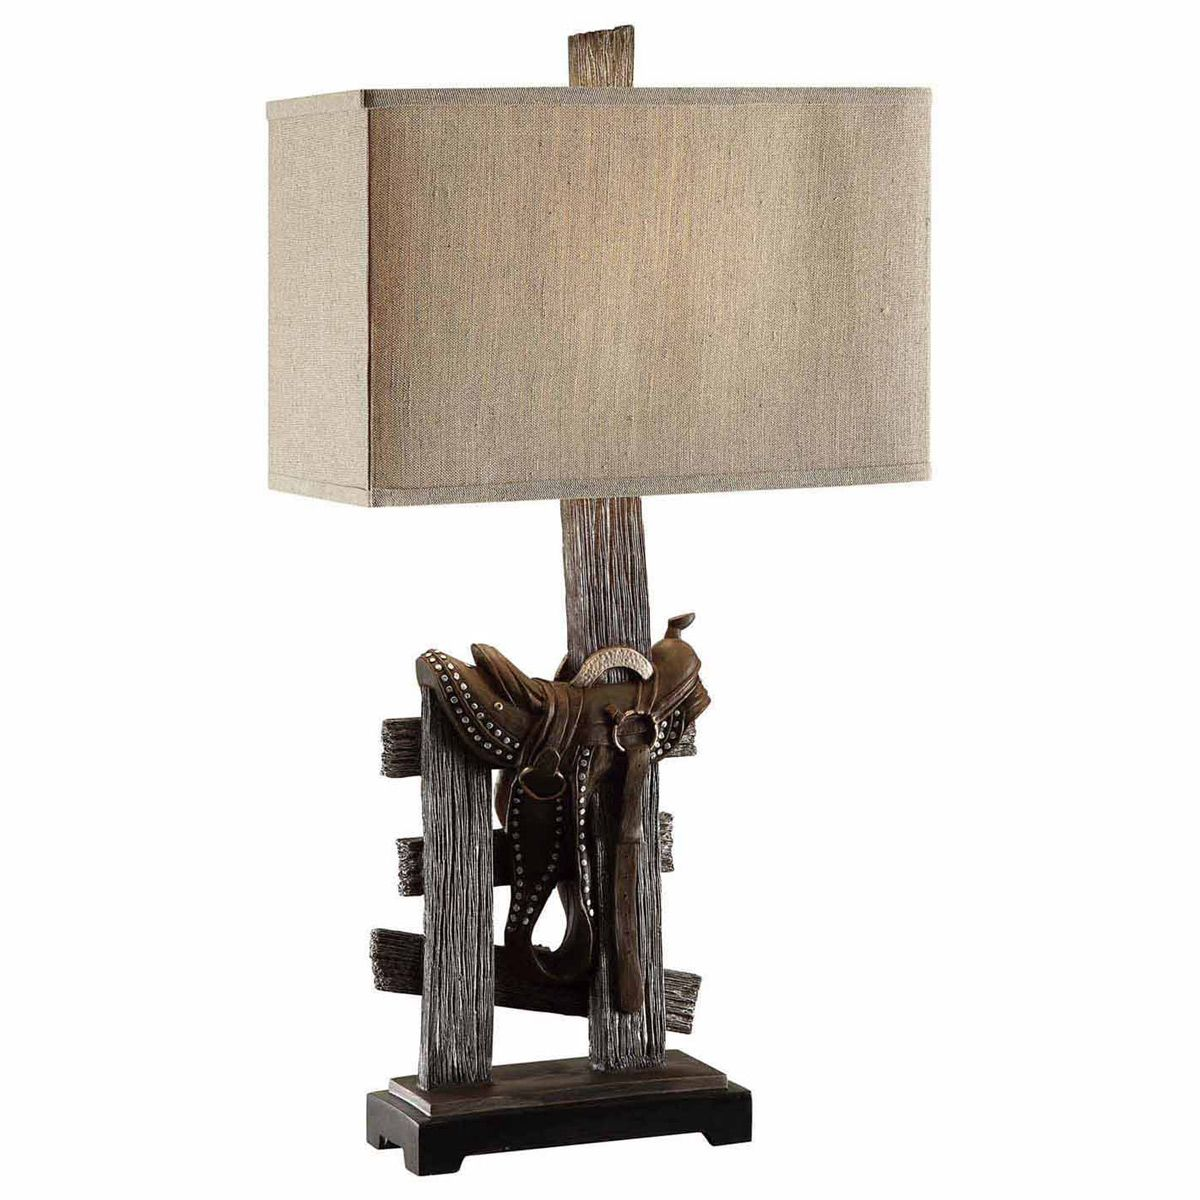 Saddle on Fence Table Lamp - OVERSTOCK